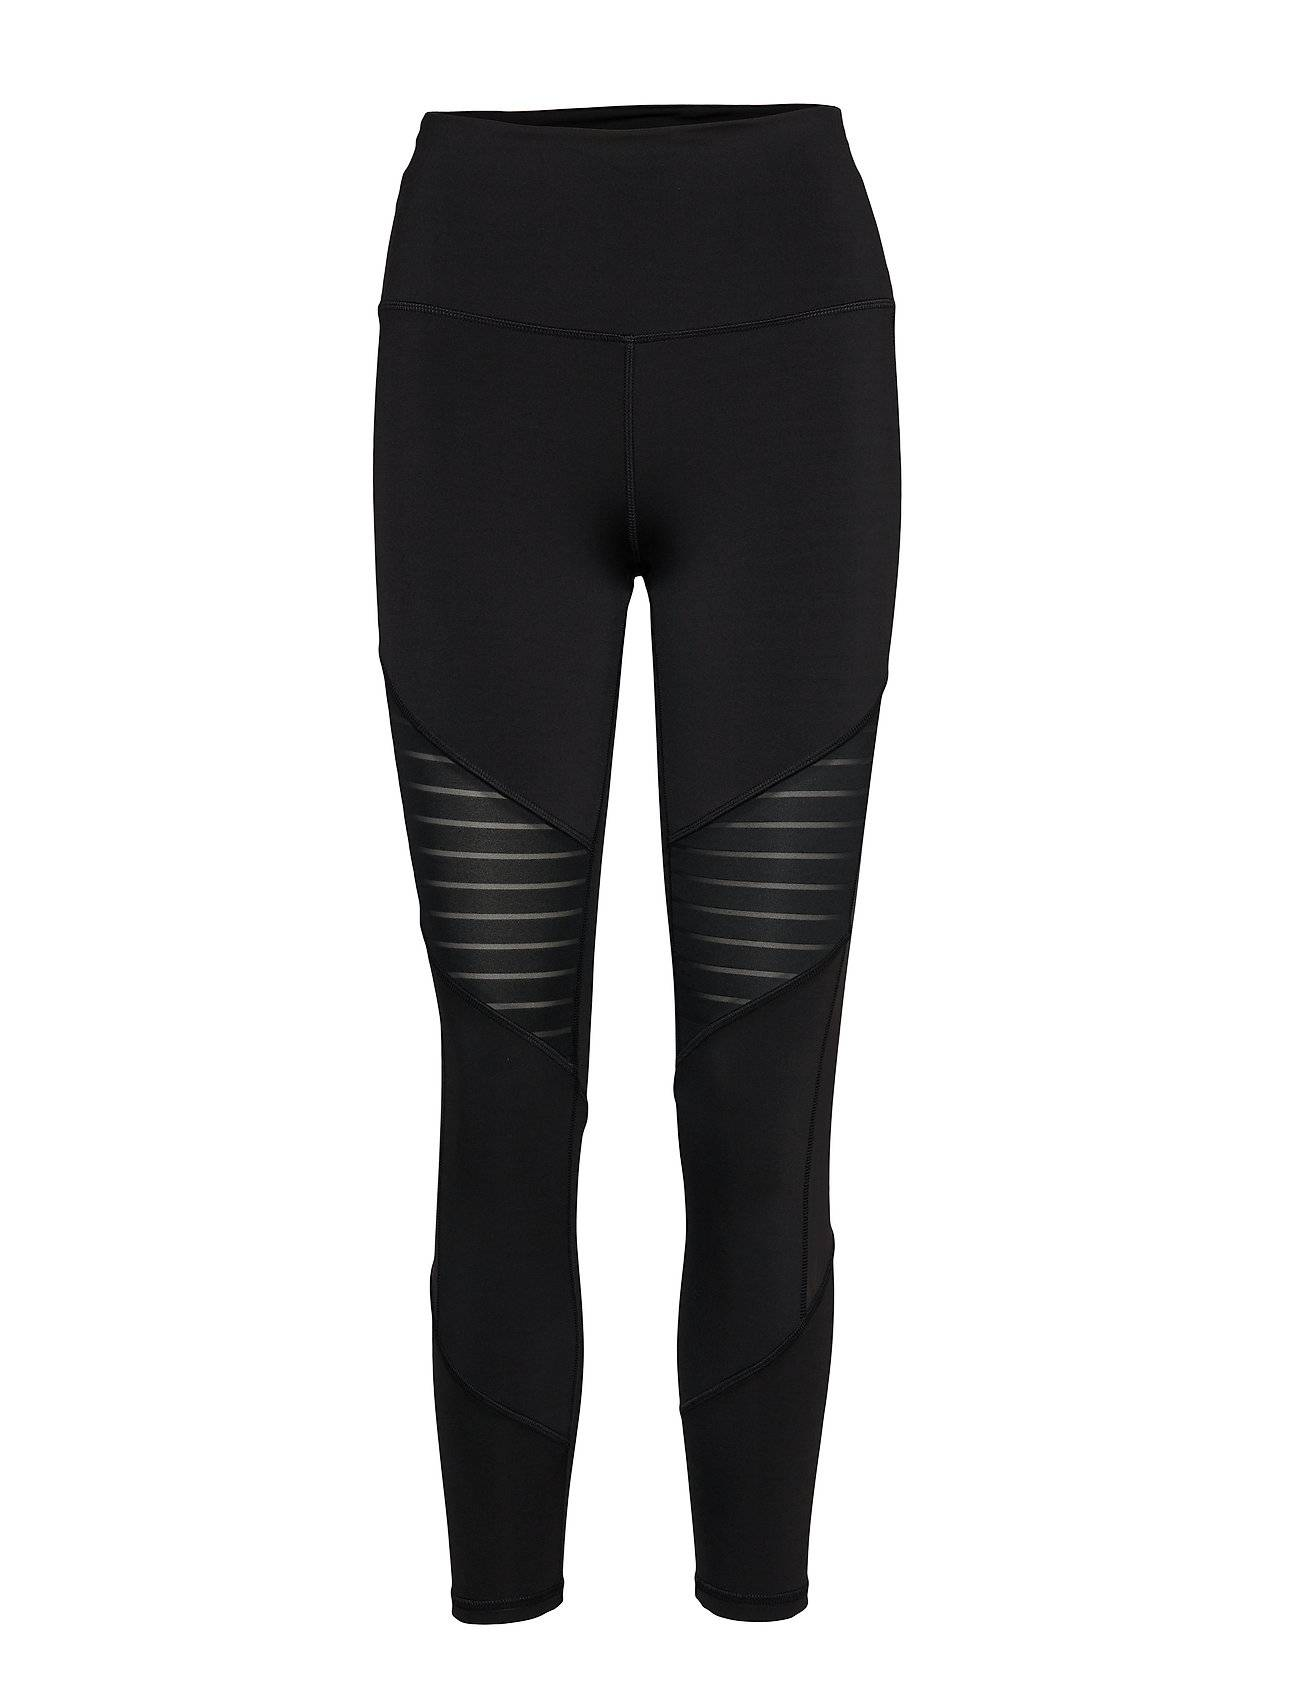 Image of Reebok Performance S Mesh Tight Running/training Tights Musta Reebok Performance